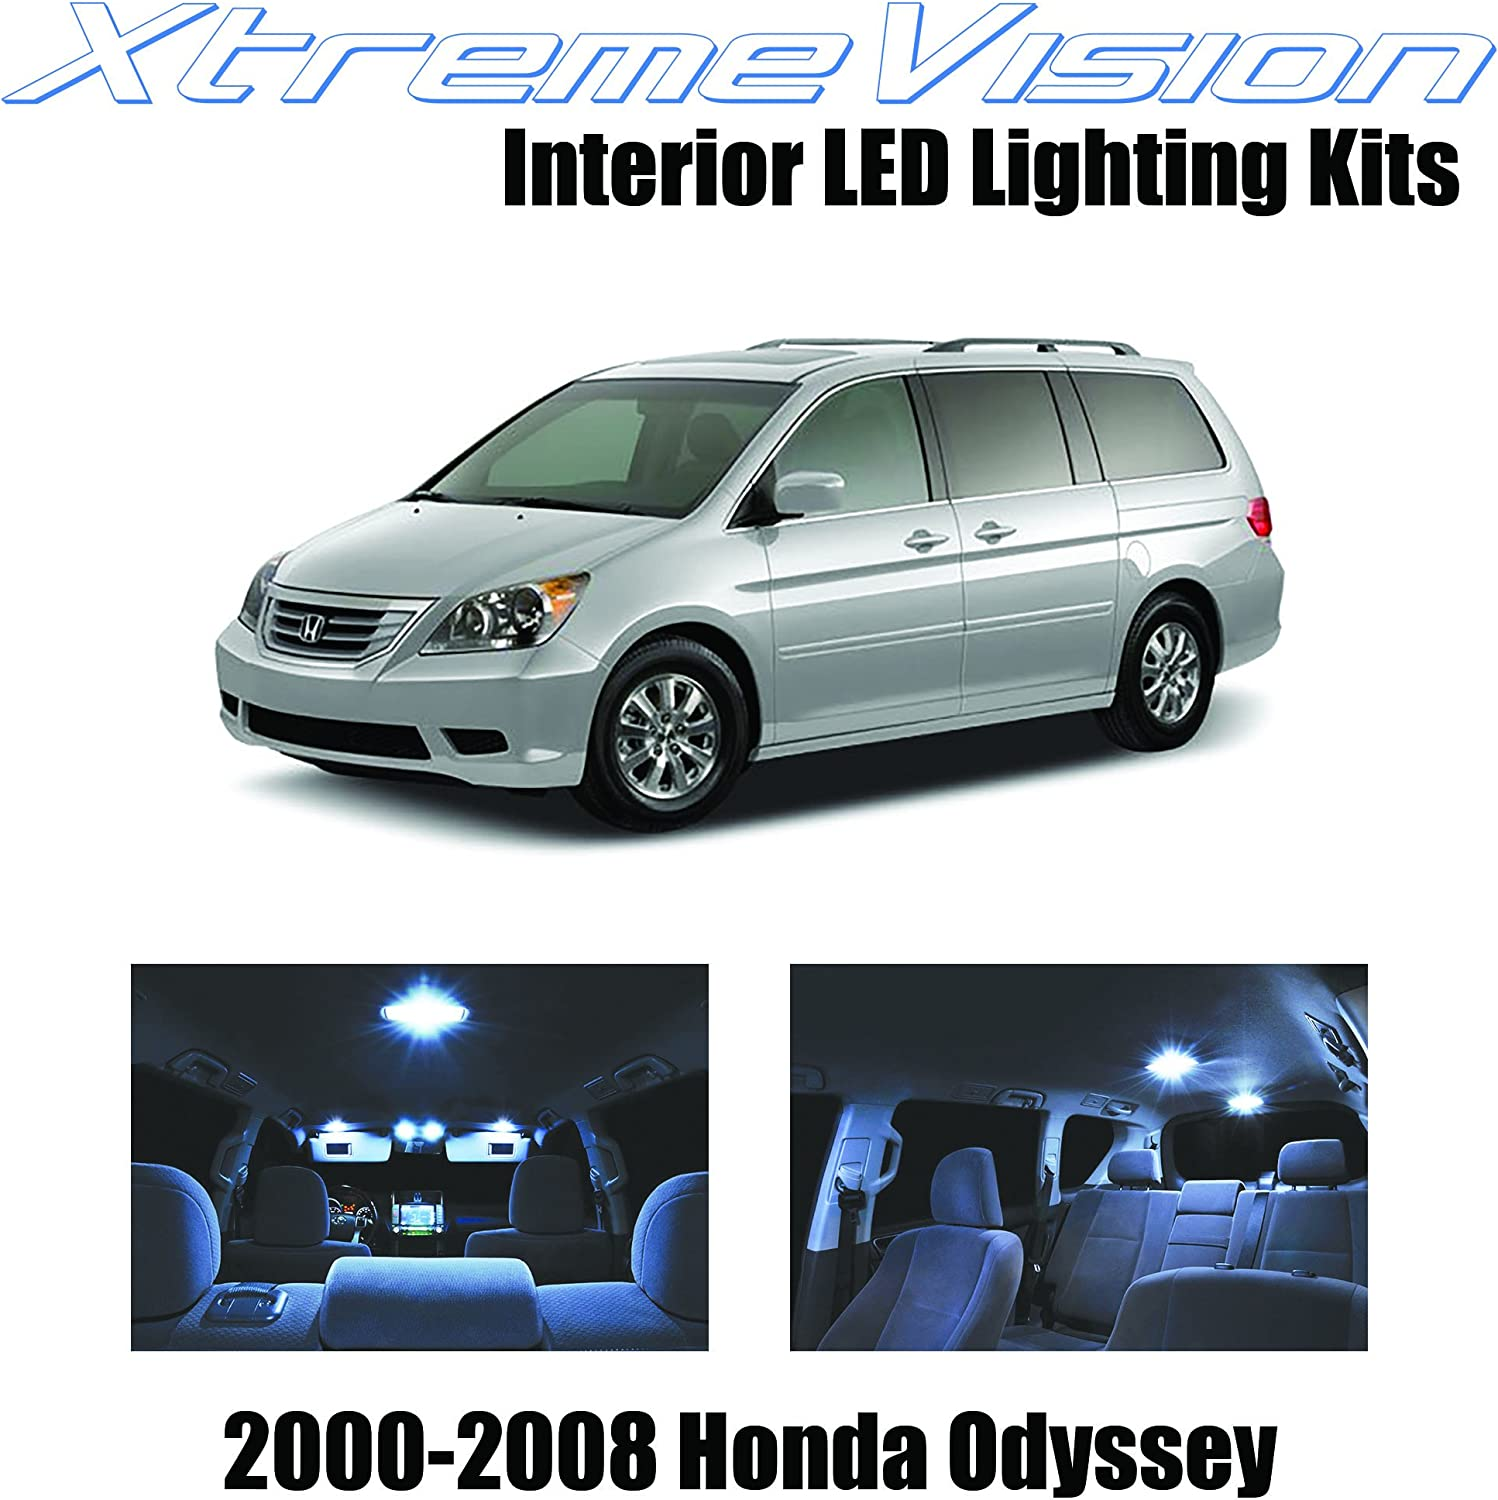 amazon com xtremevision interior led for honda odyssey 2000 2008 12 pieces cool white interior led kit installation tool automotive xtremevision interior led for honda odyssey 2000 2008 12 pieces cool white interior led kit installation tool